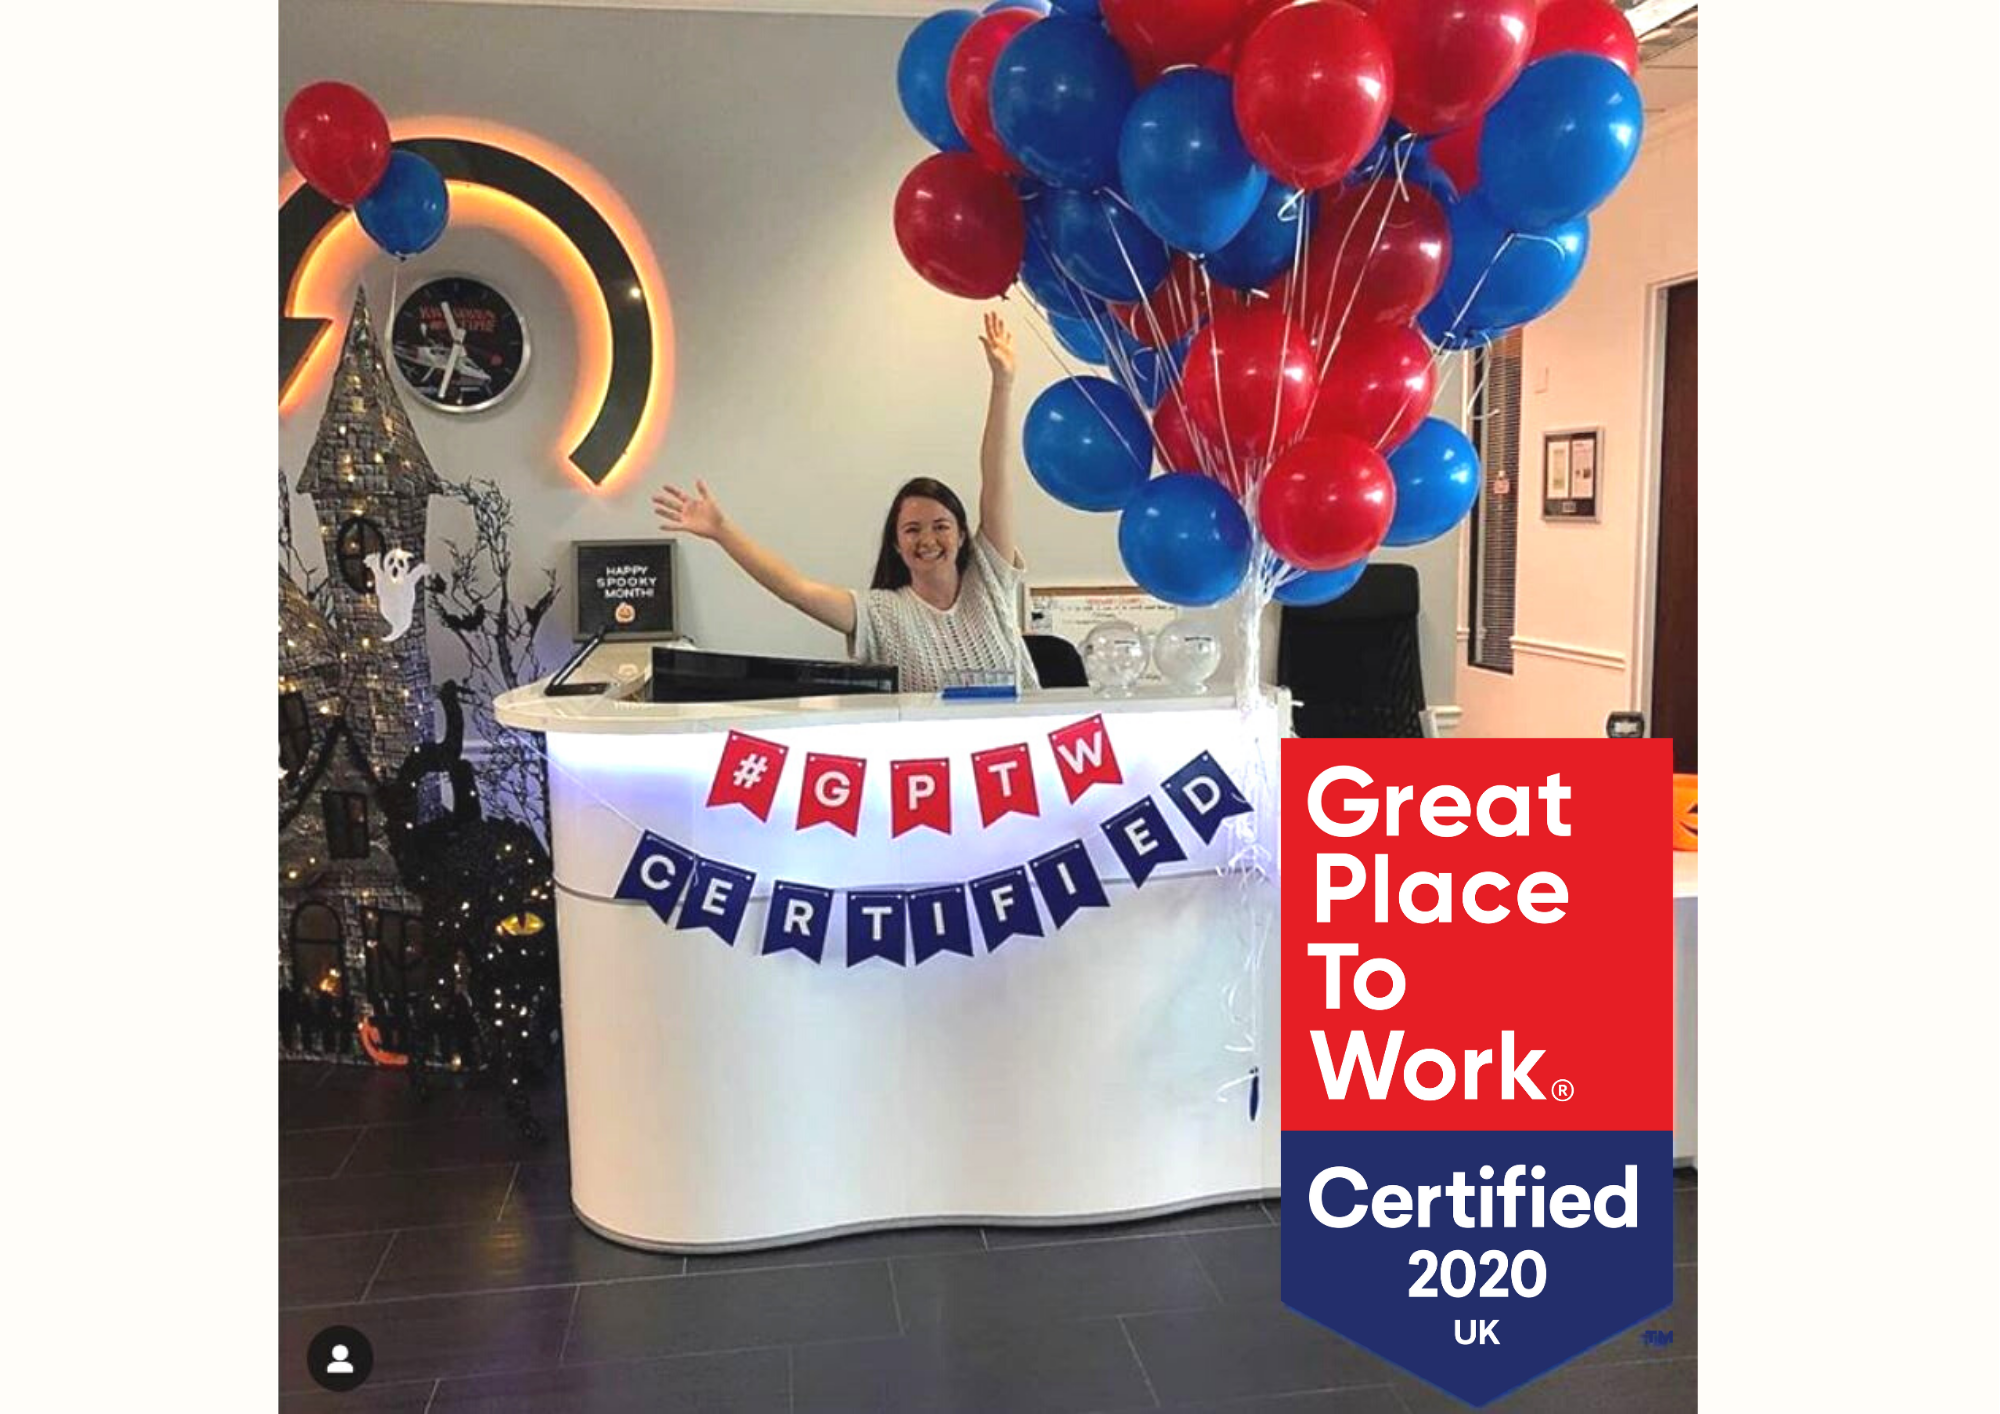 12 Benefits of Getting Great Place to Work-Certified™